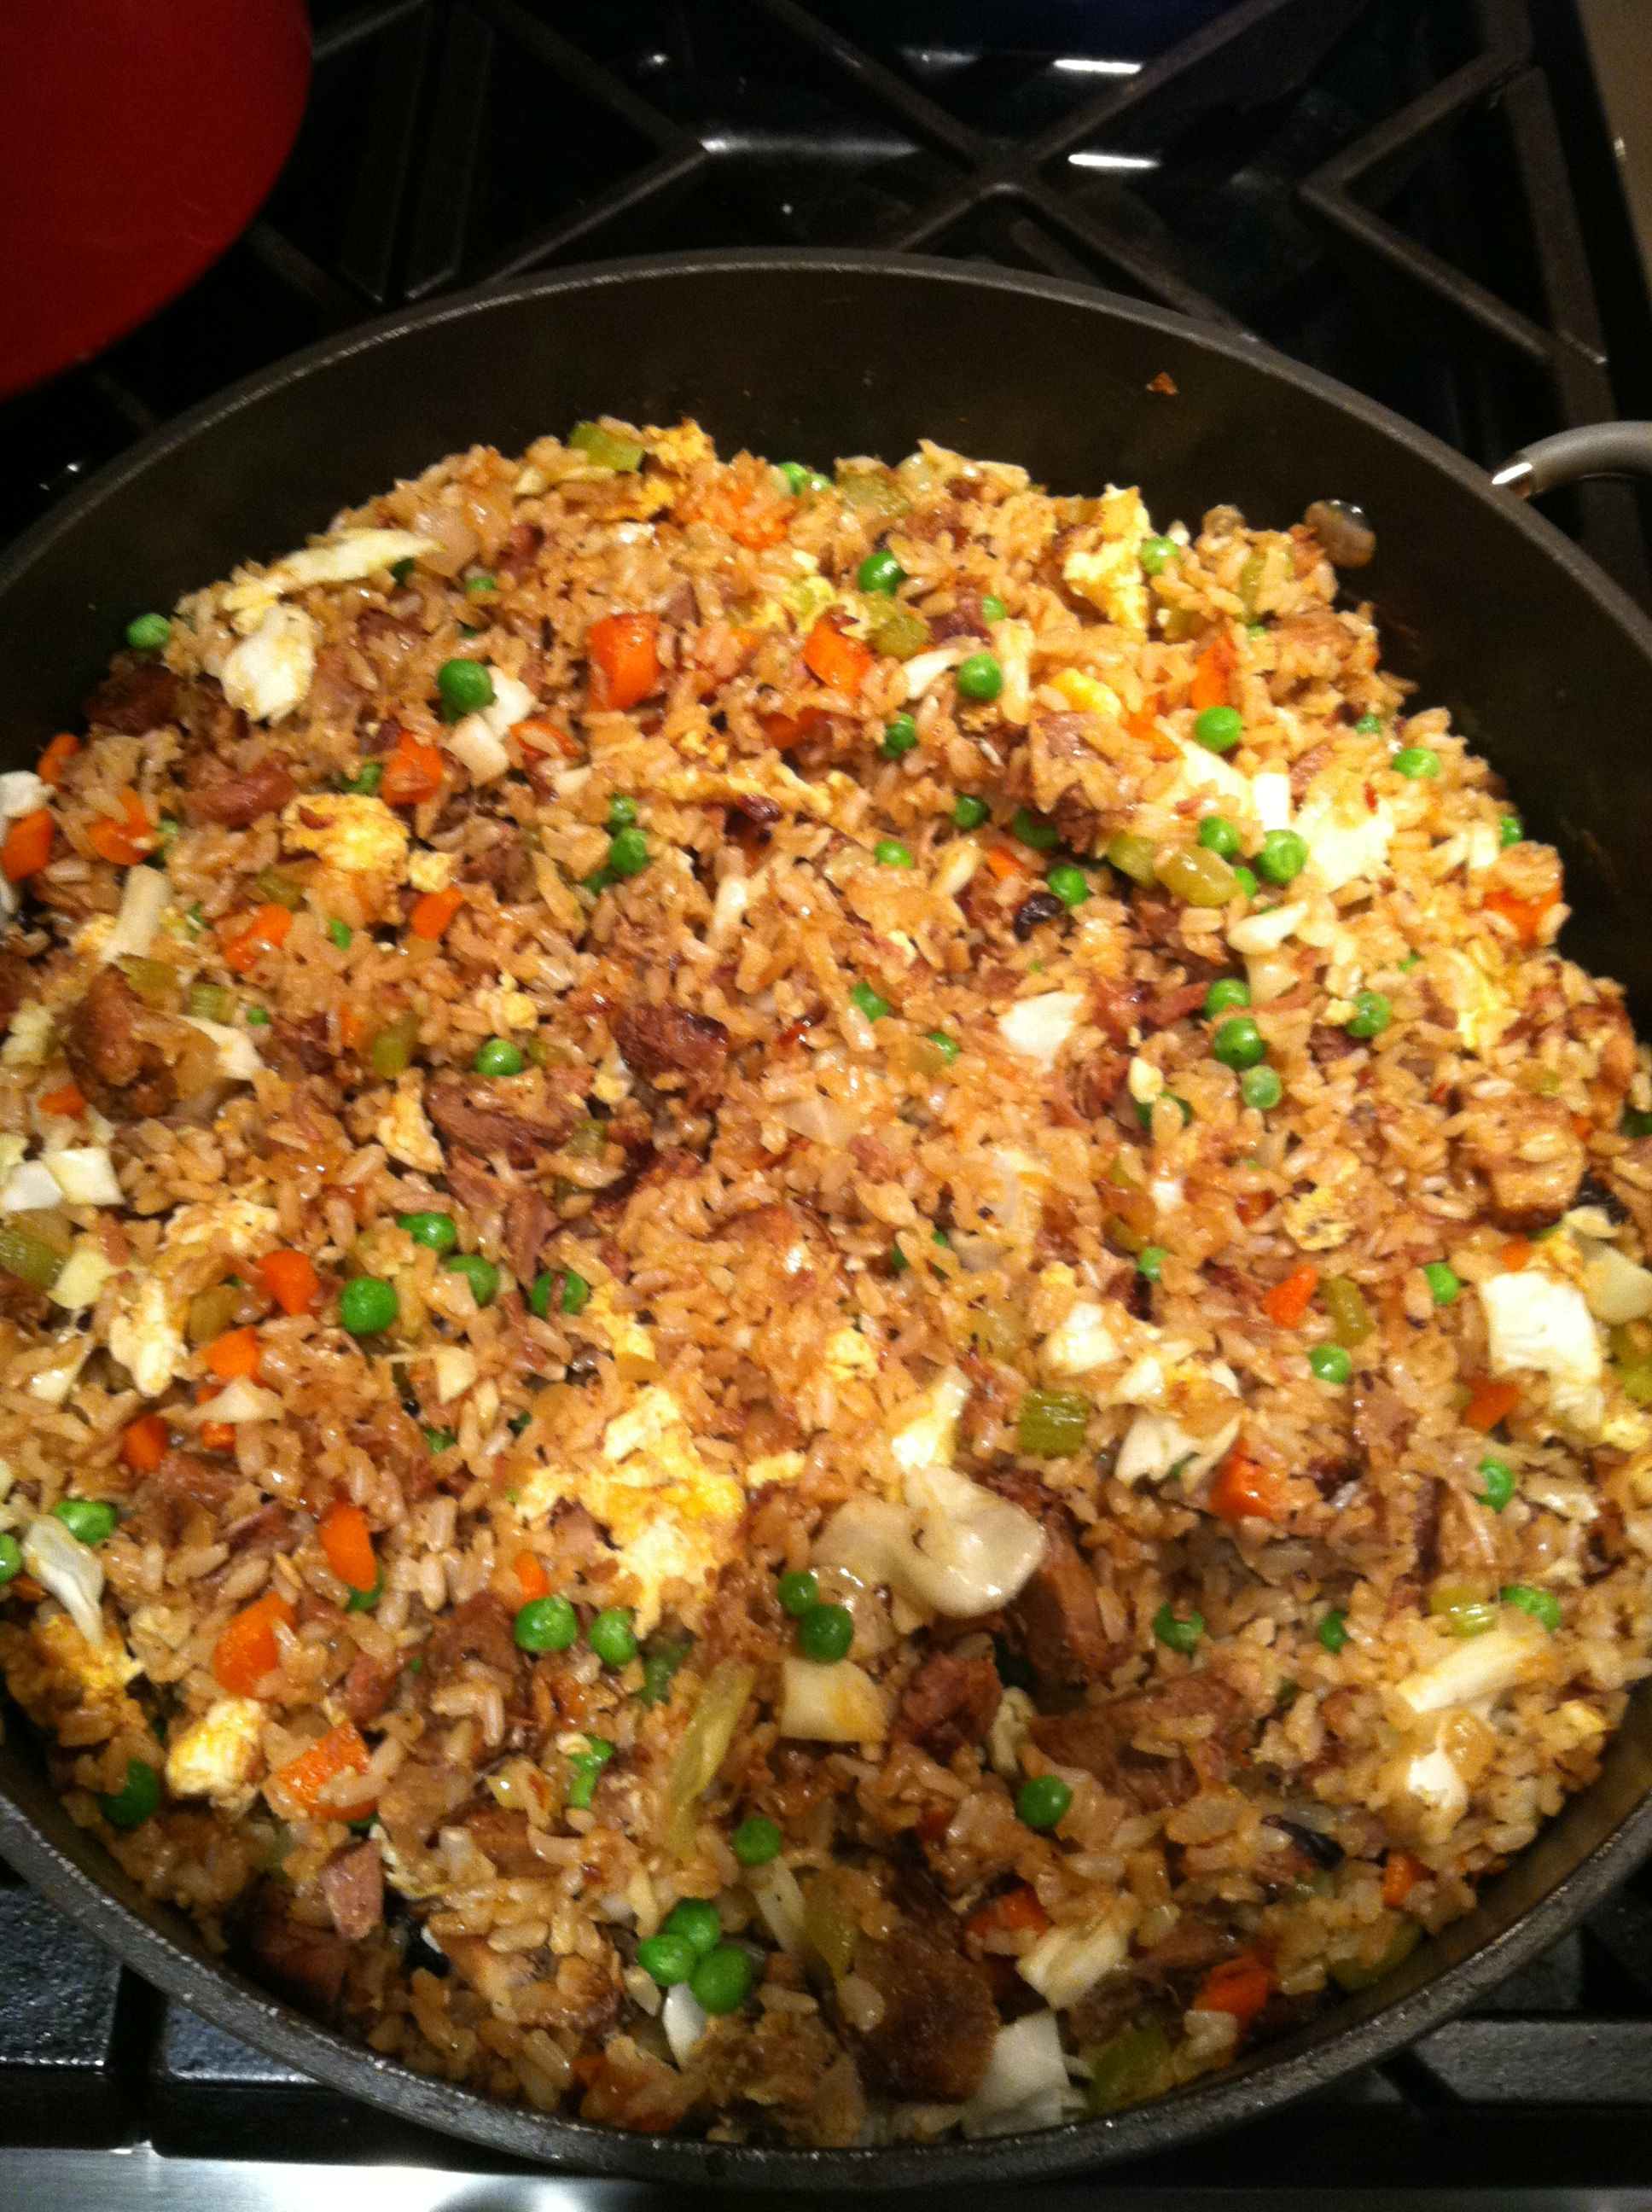 My Fried Rice Is So Good As A Side Dish Or Main Dish As A